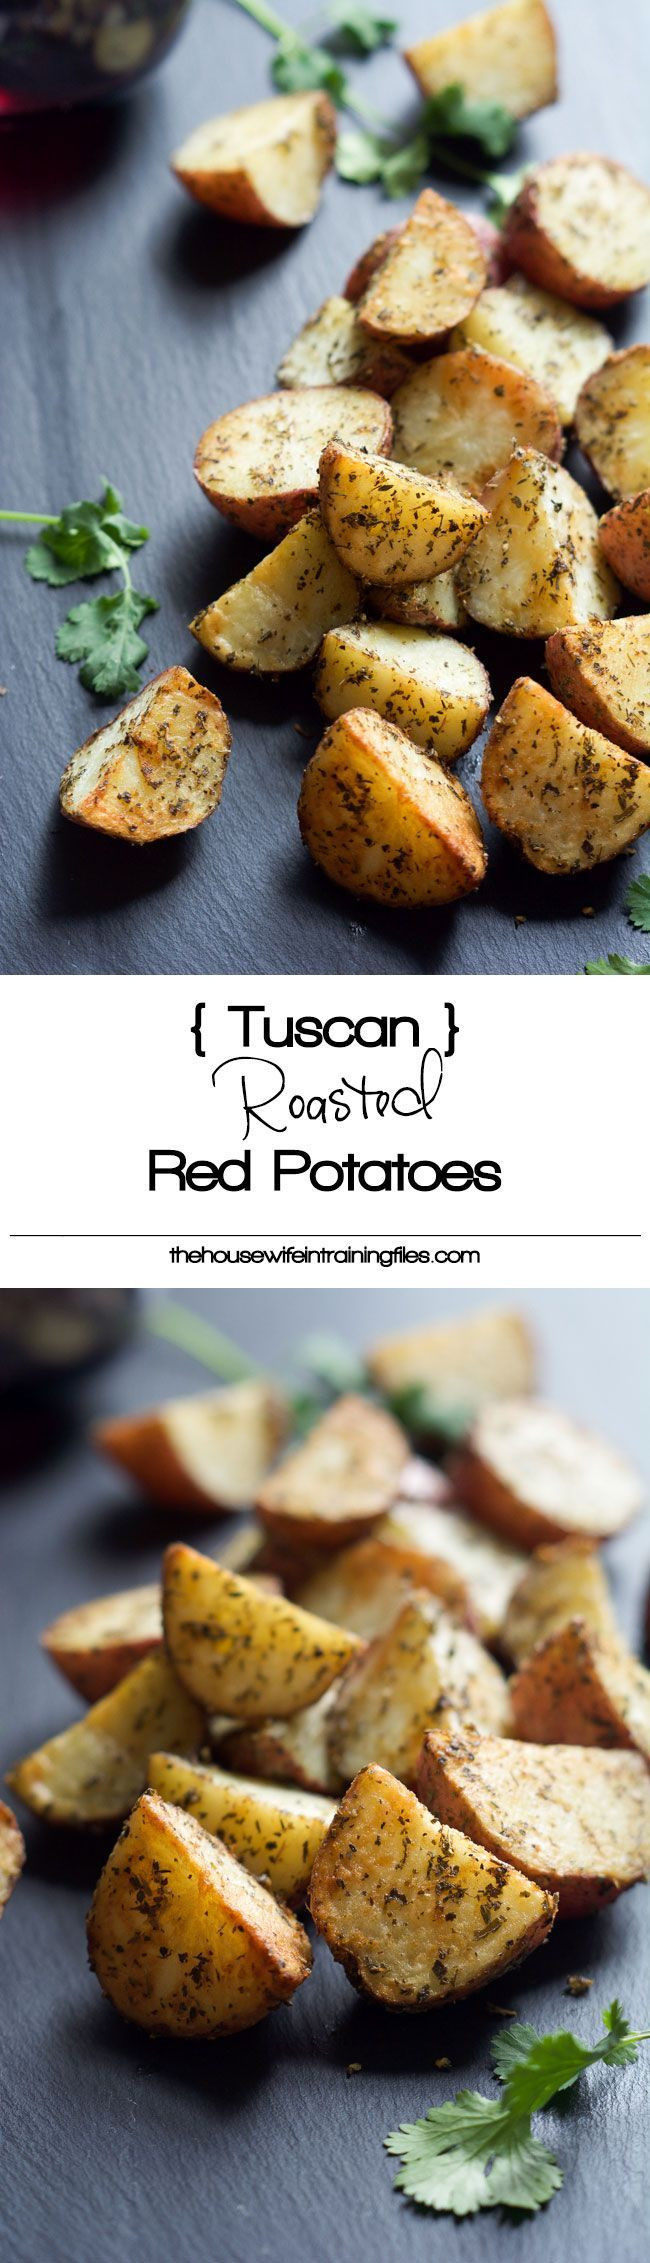 Healthy Red Potato Recipes  Simple Tuscan Oven Roasted Red Potatoes Recipe